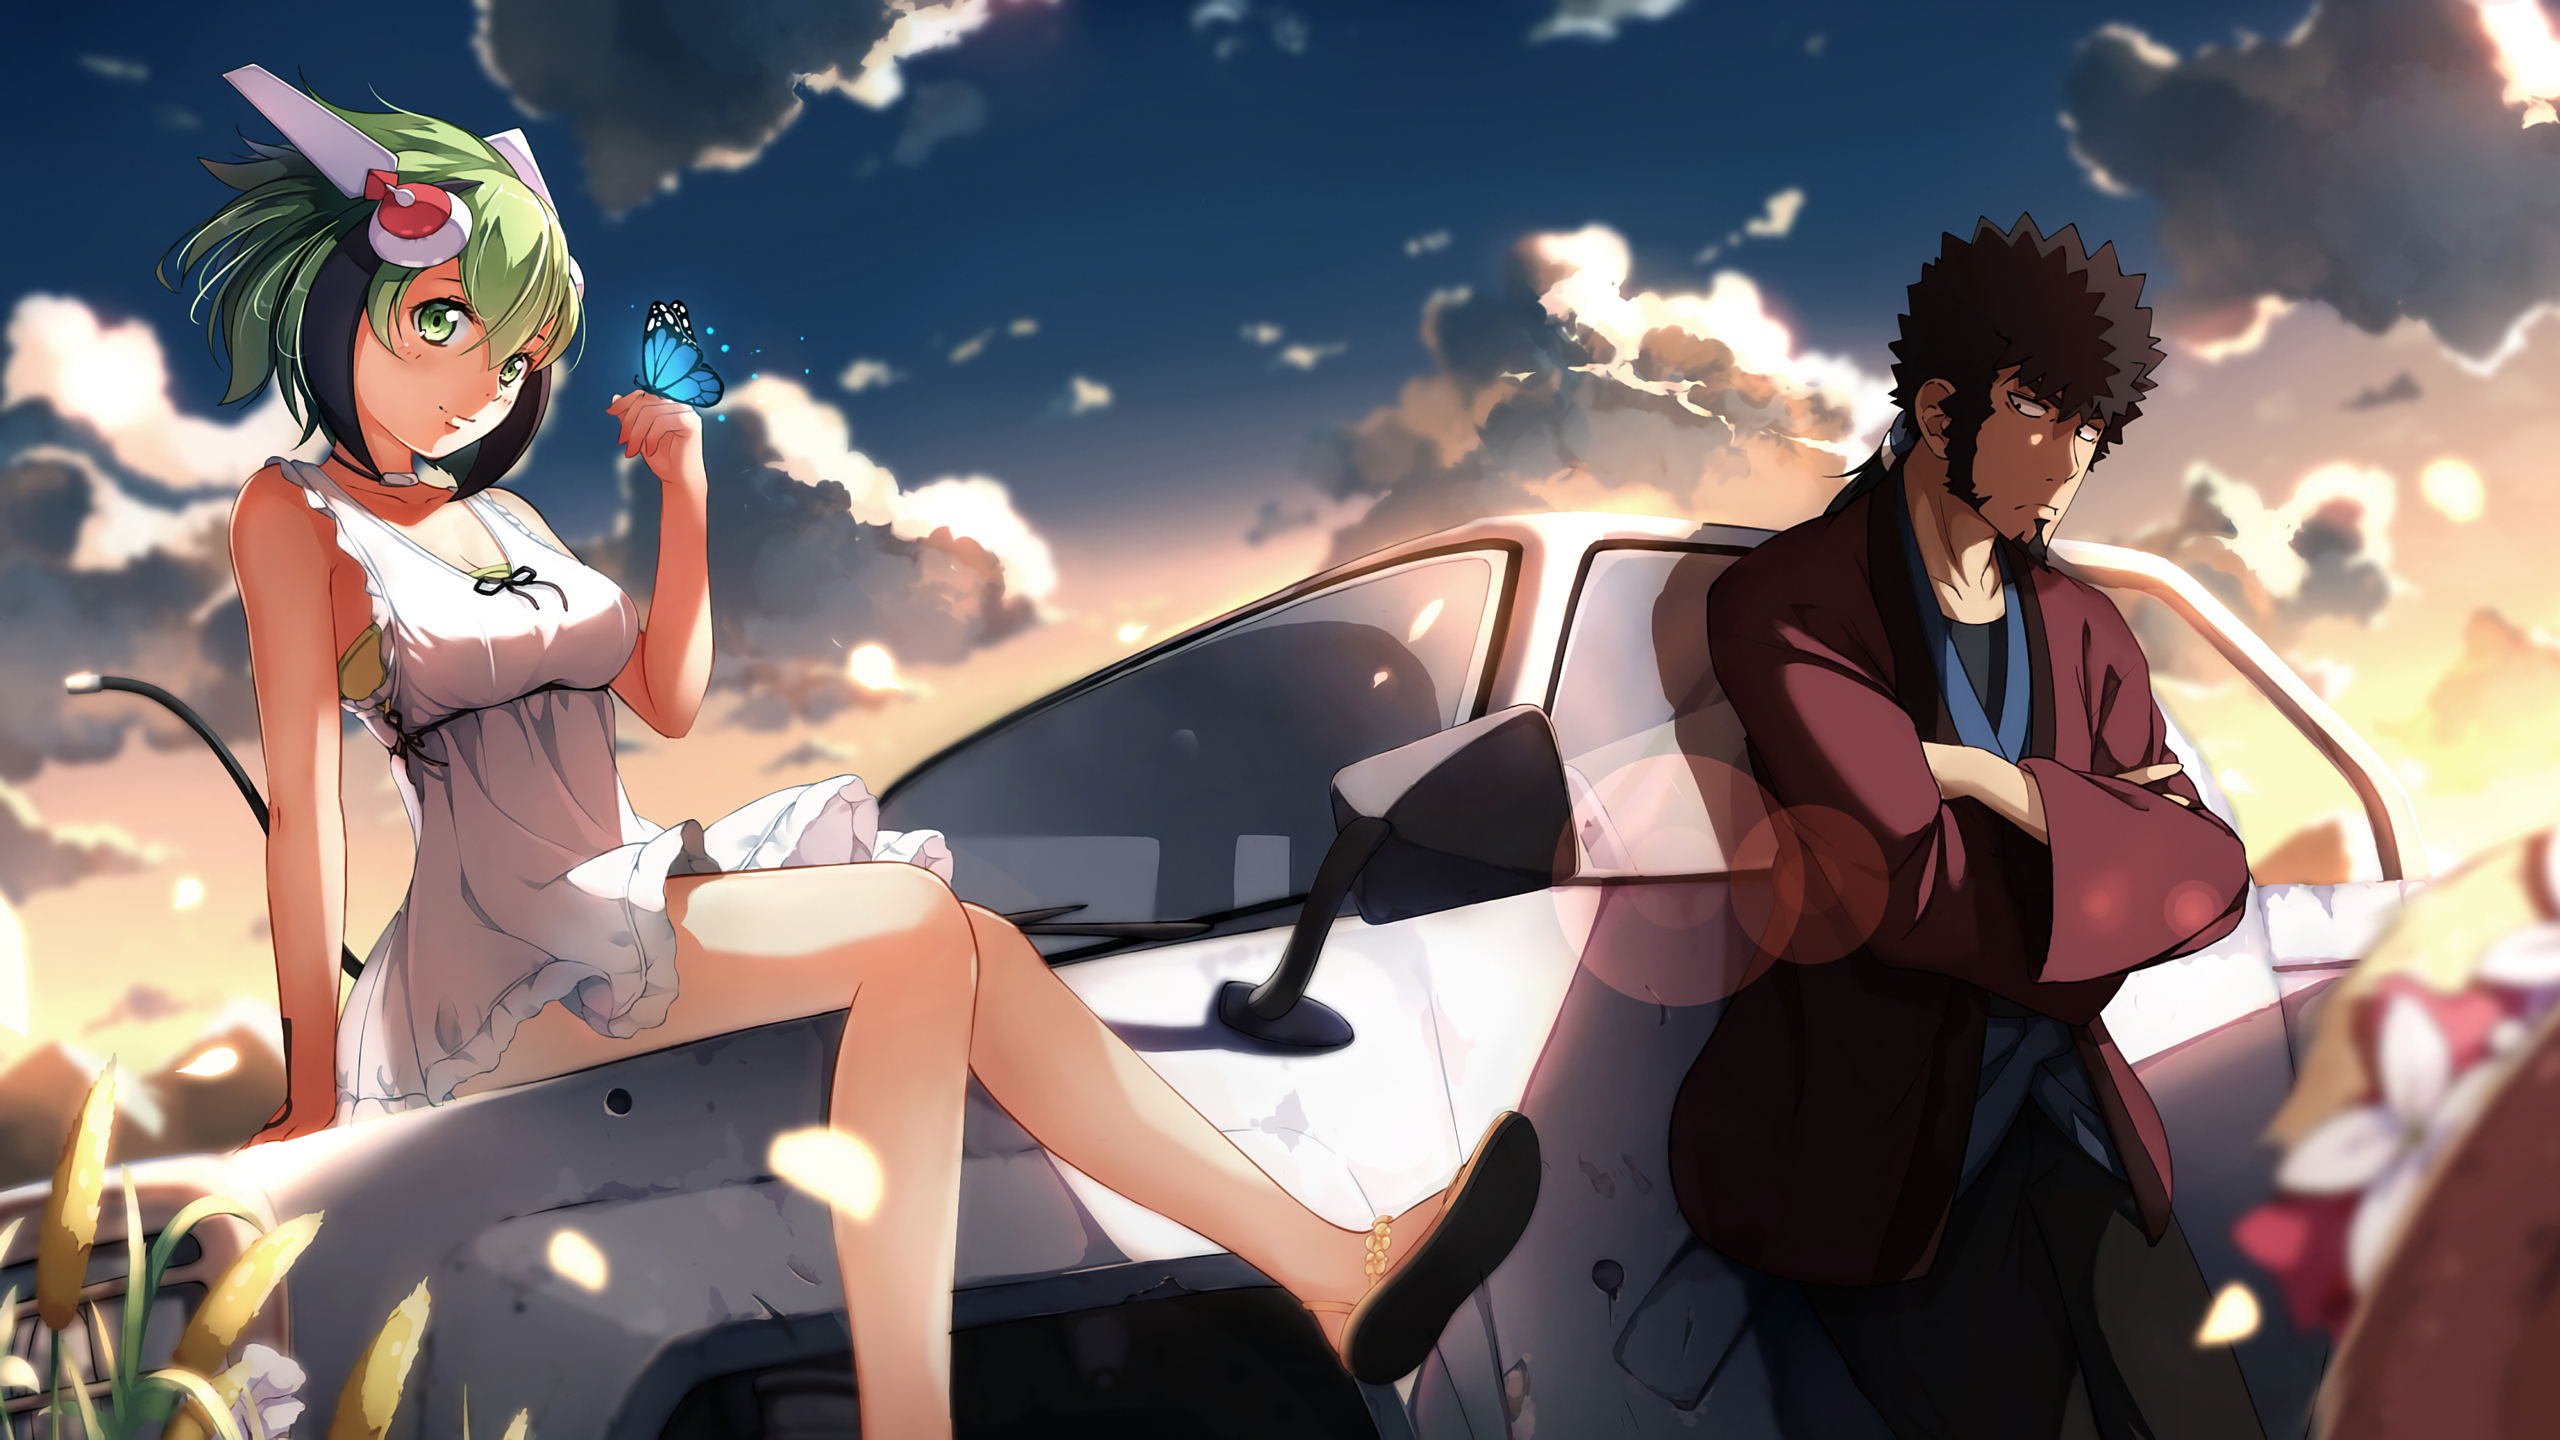 Car 1440p Phone Wallpaper 9 Dimension W Hd Wallpapers Backgrounds Wallpaper Abyss